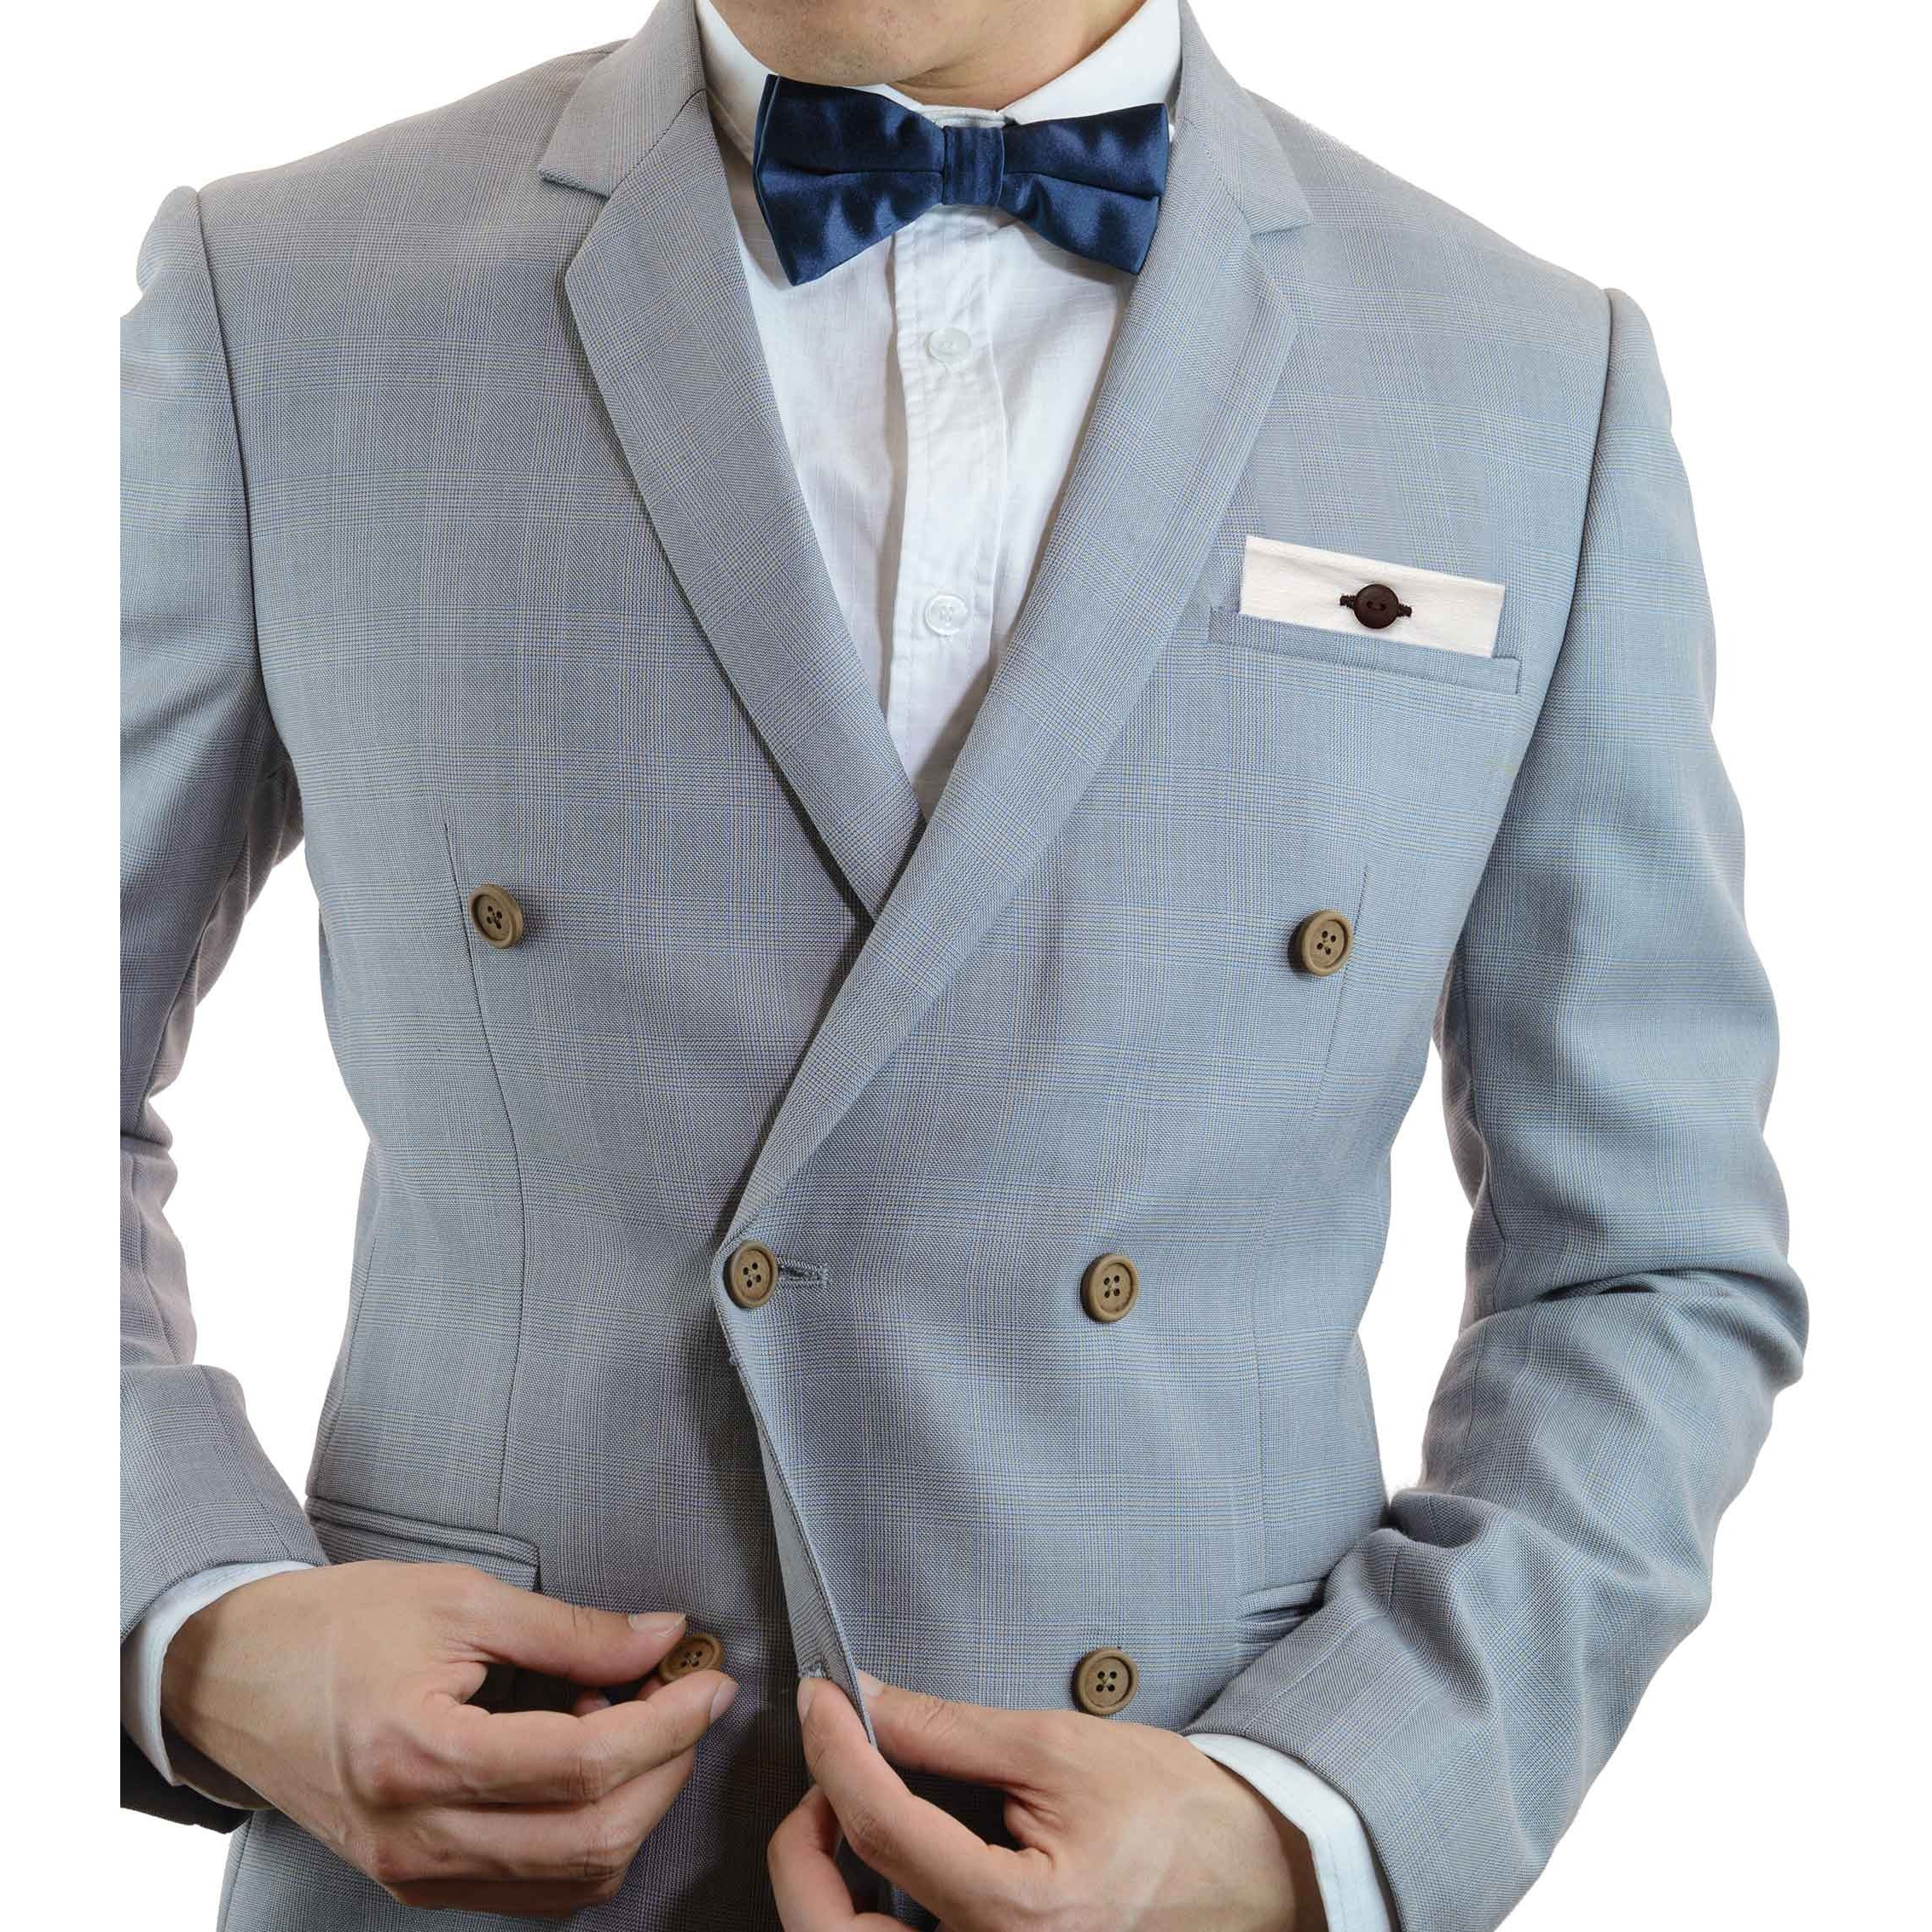 The Collectable Pocket Square